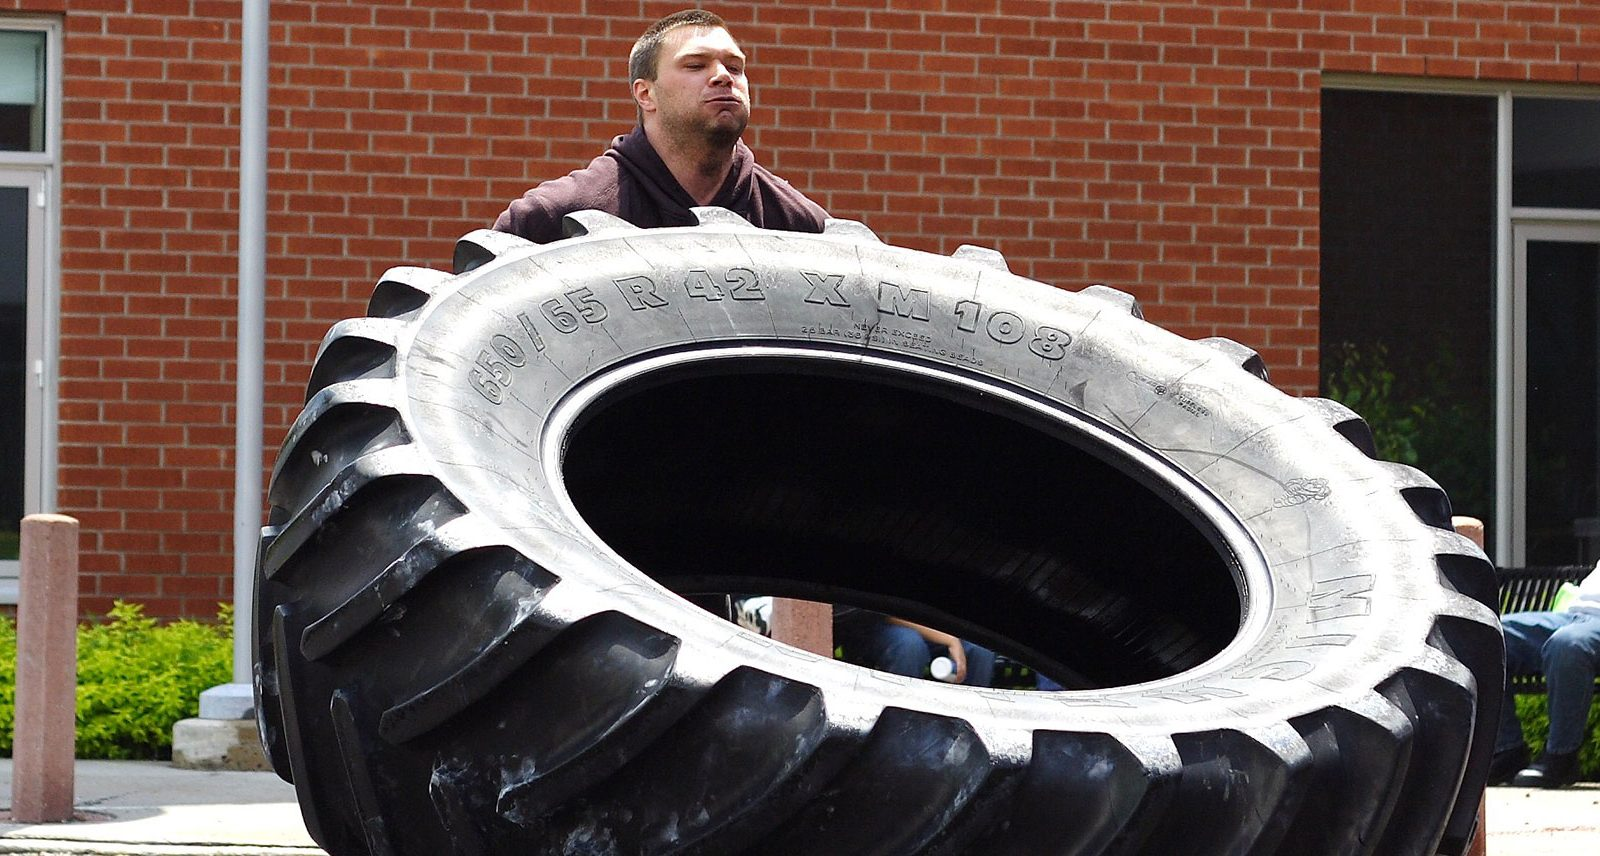 What Does a Tire Flip Actually Do for You, Muscle-Wise?